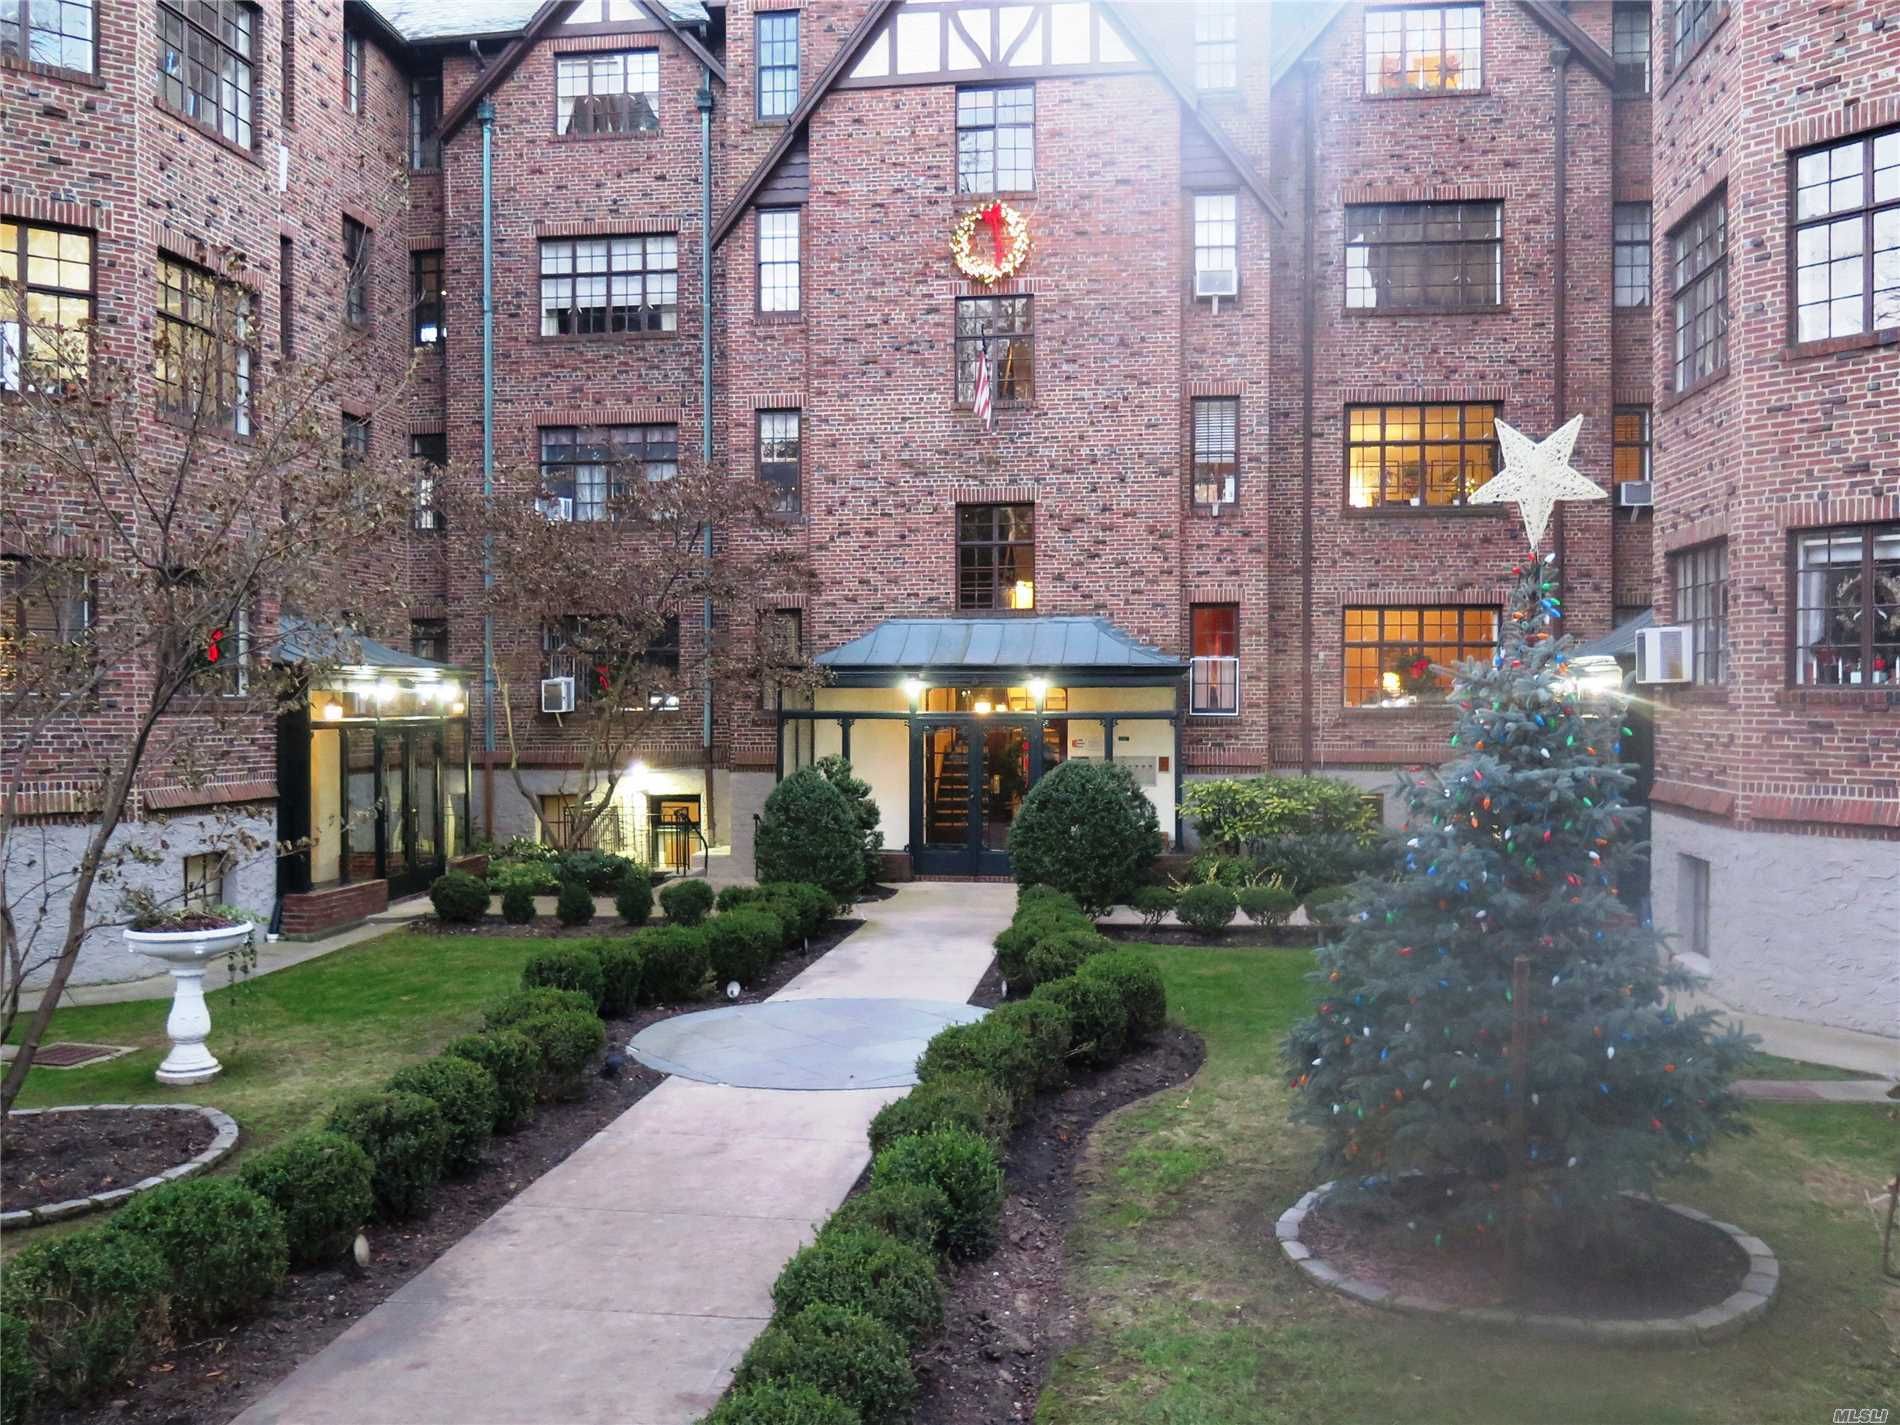 Charming 2 Bedroom Apartment With Wood Burning Fireplace In Desirable Old World Tudor Building In Douglaston. Convenient To Long Island Railroad. School District #26 - Ps 98, Ms 67, Cardozo Hs. February 1st Occupancy . Pets Allowed With Board Approval.